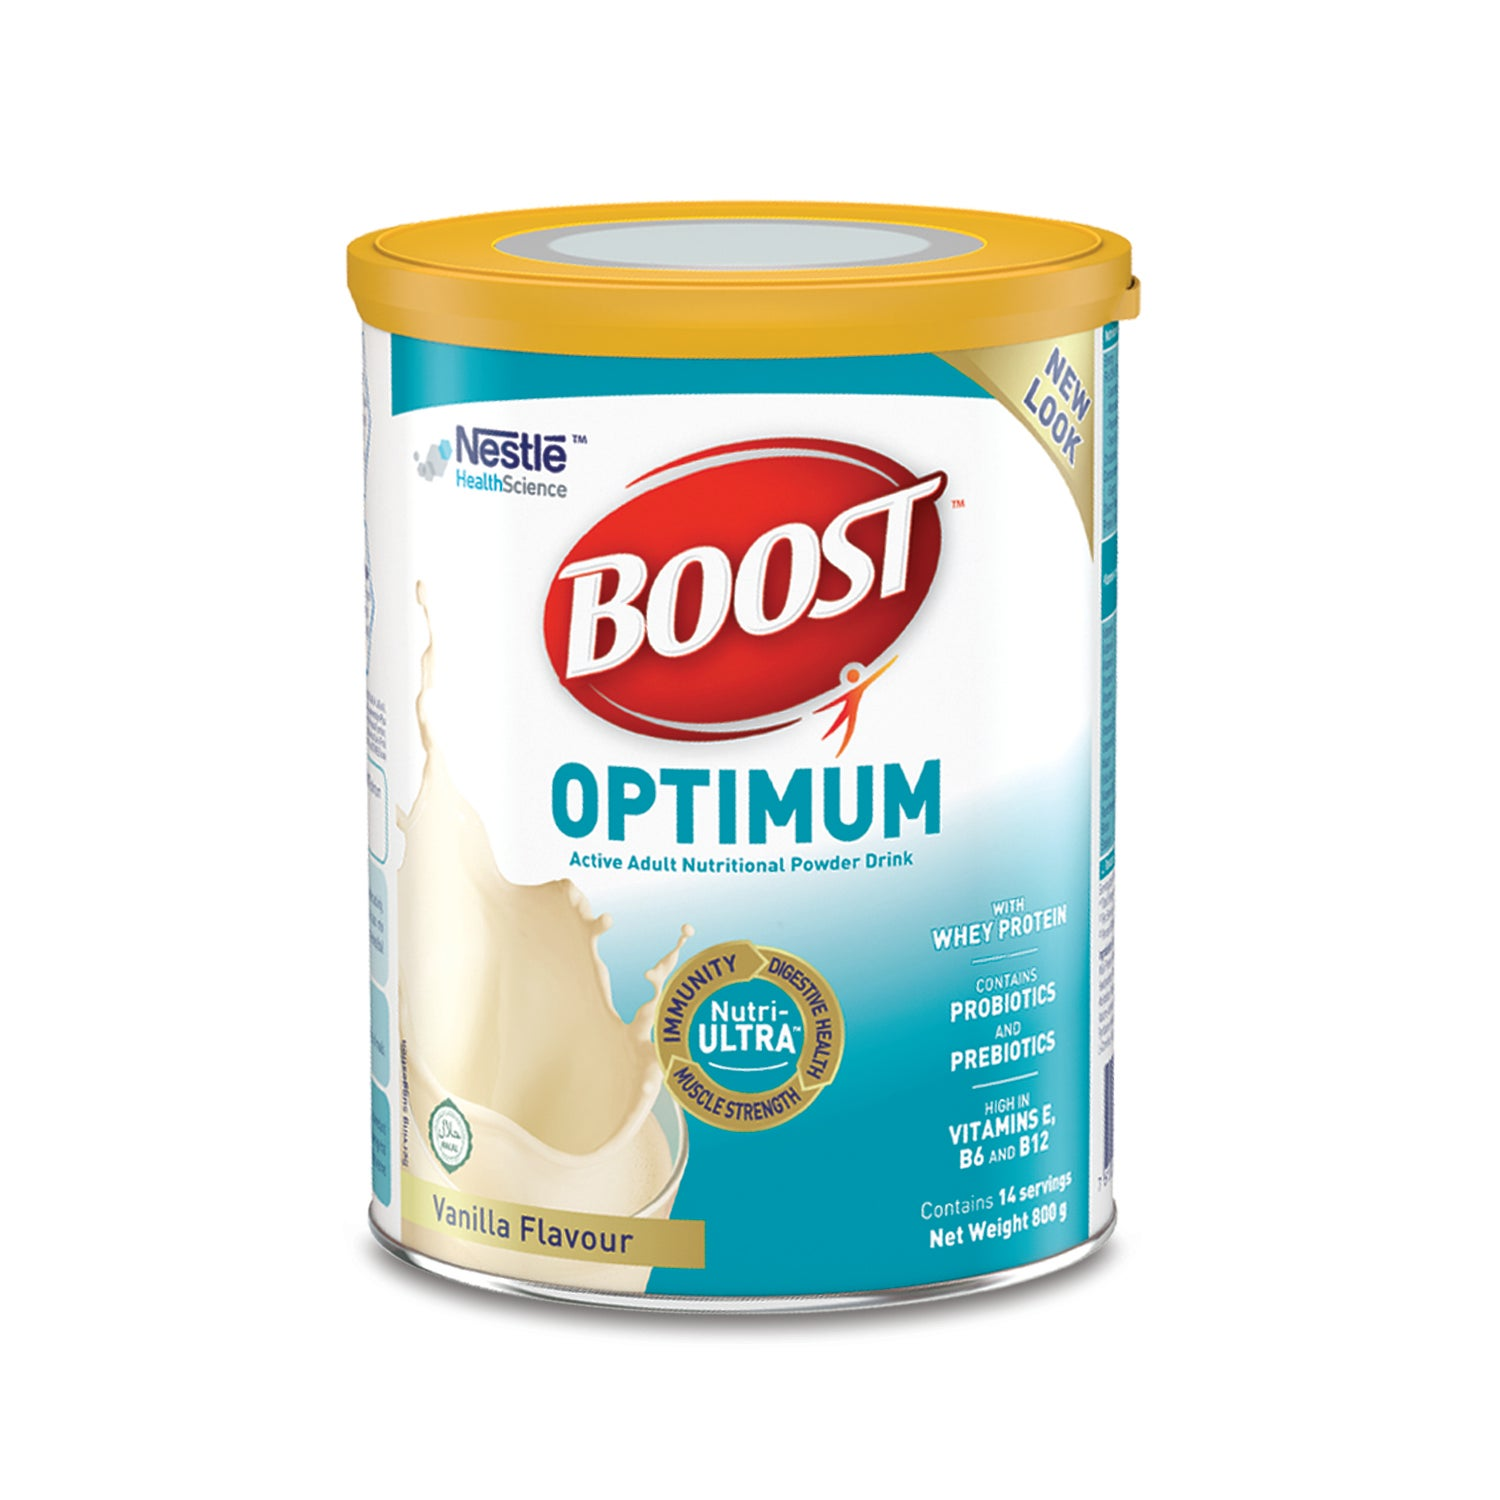 Boost Optimum can